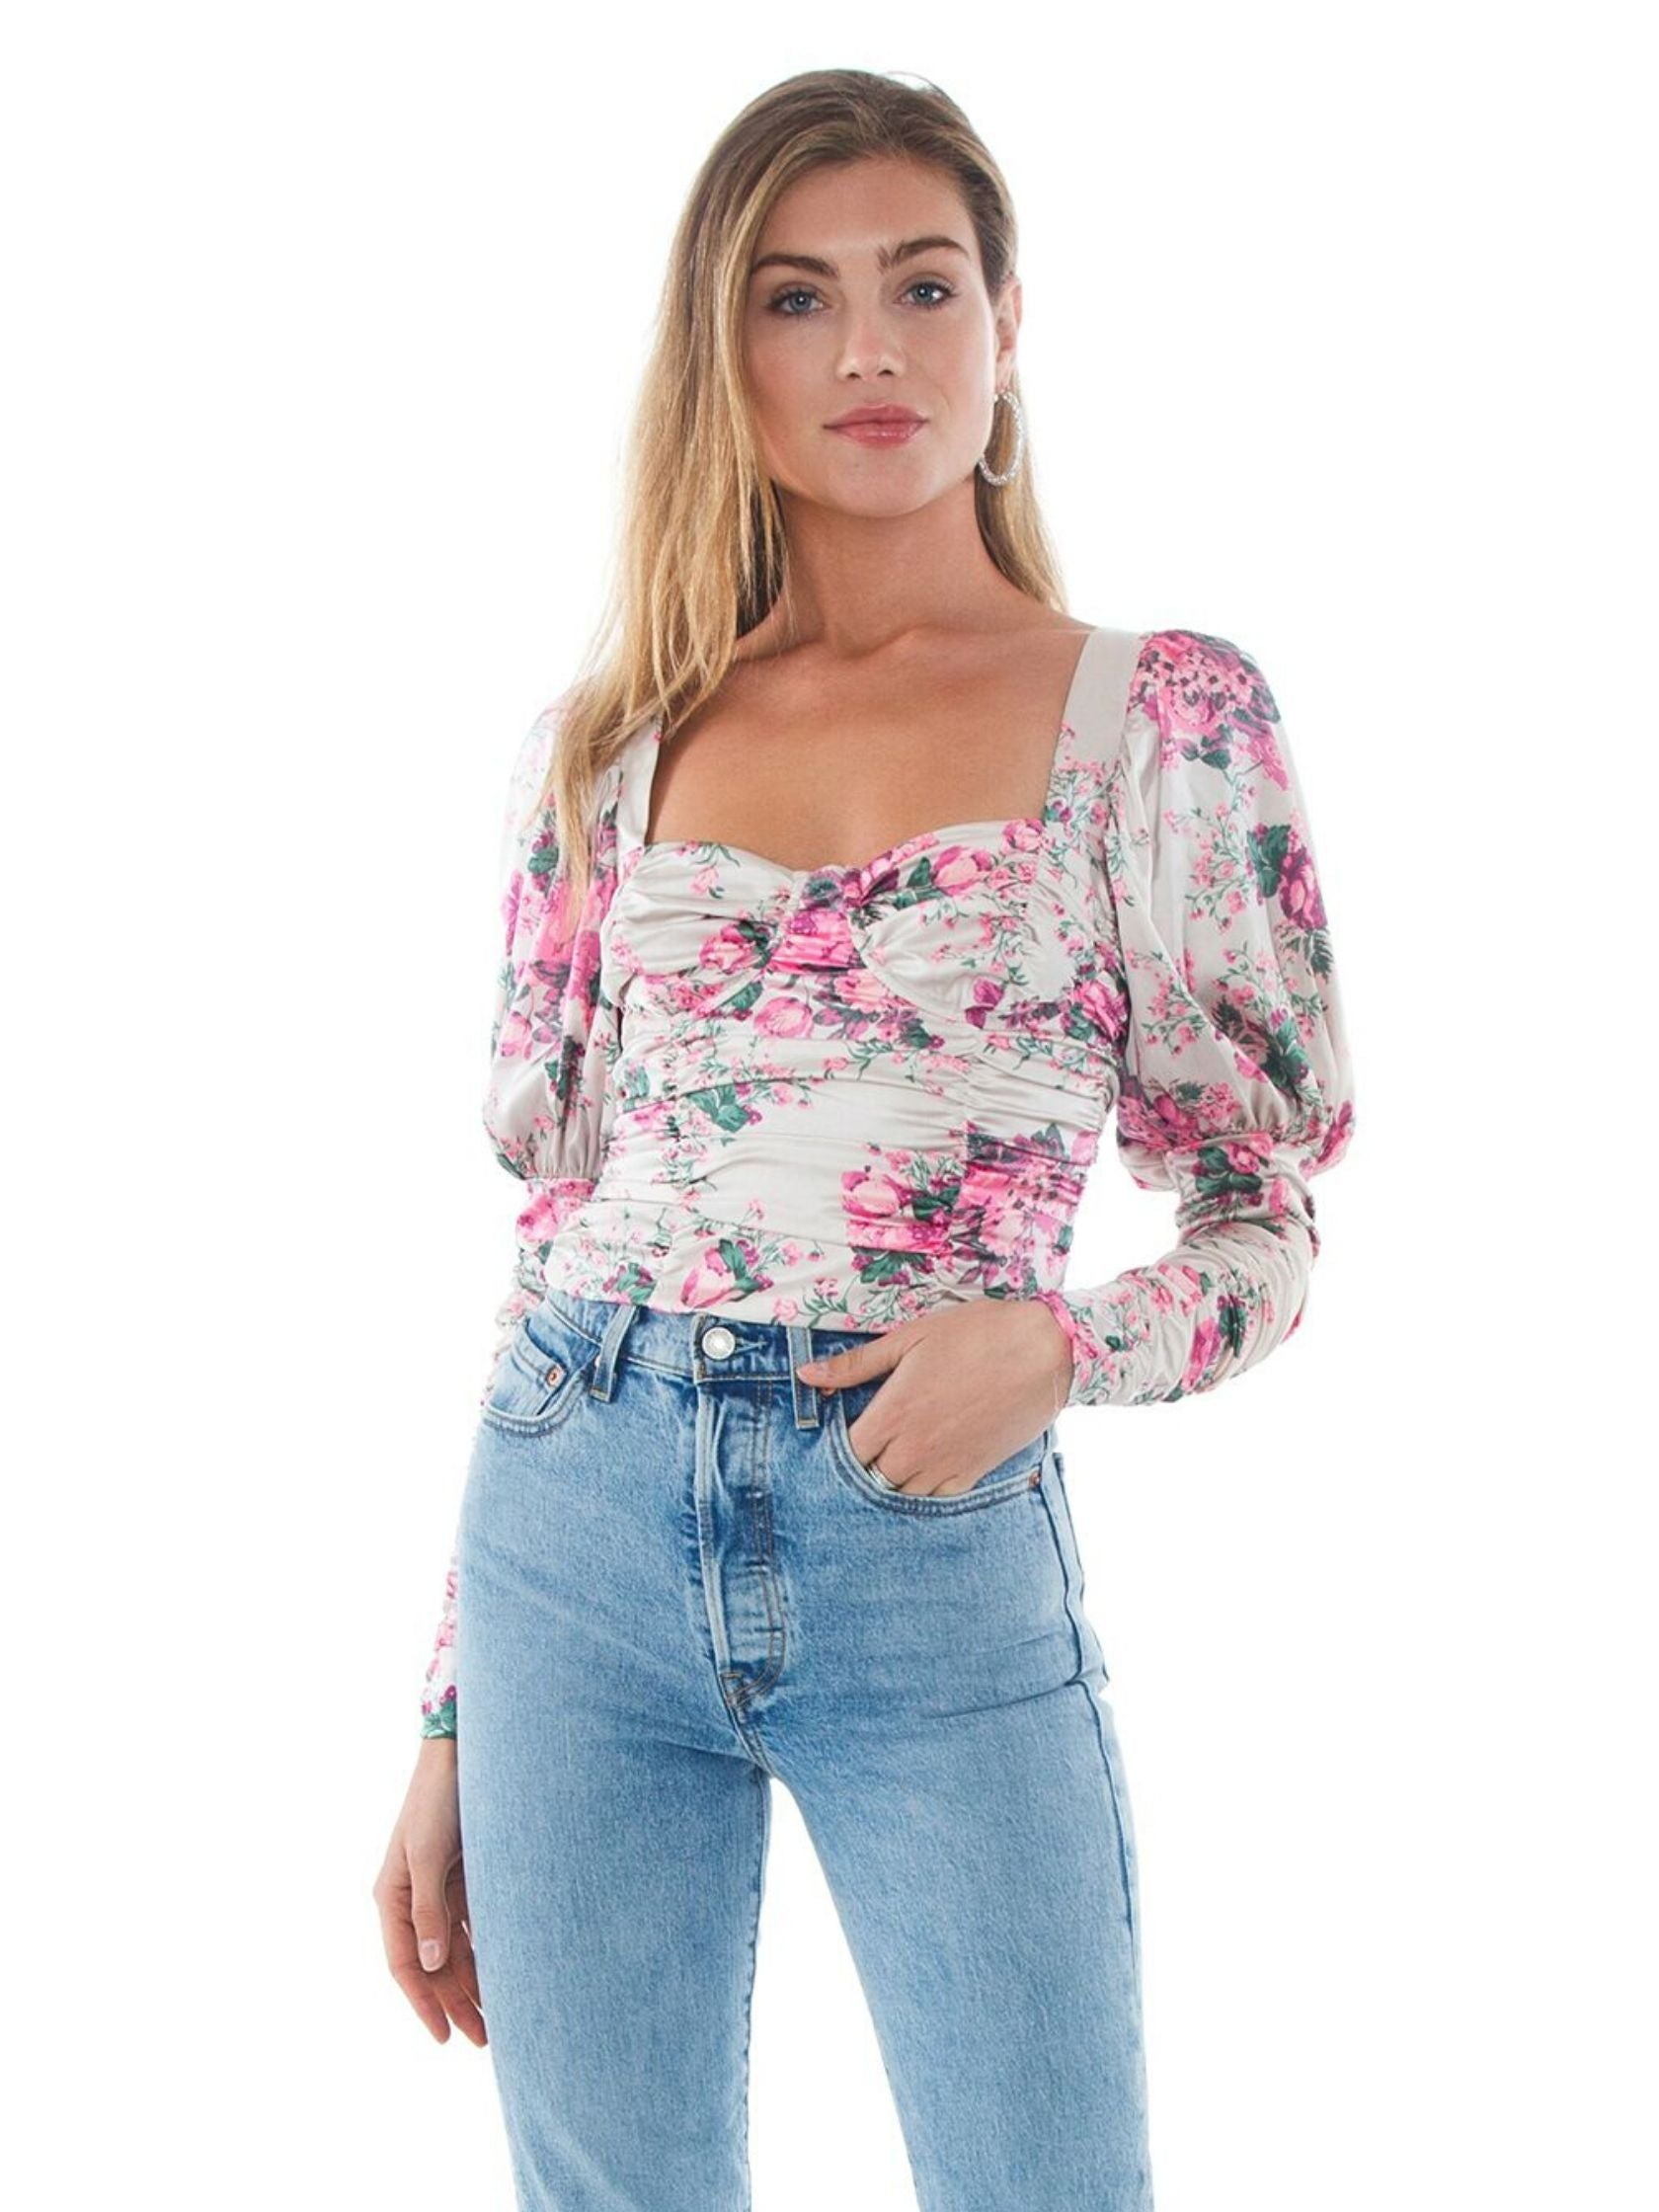 Woman wearing a top rental from For Love & Lemons called Palais Floral Crop Top